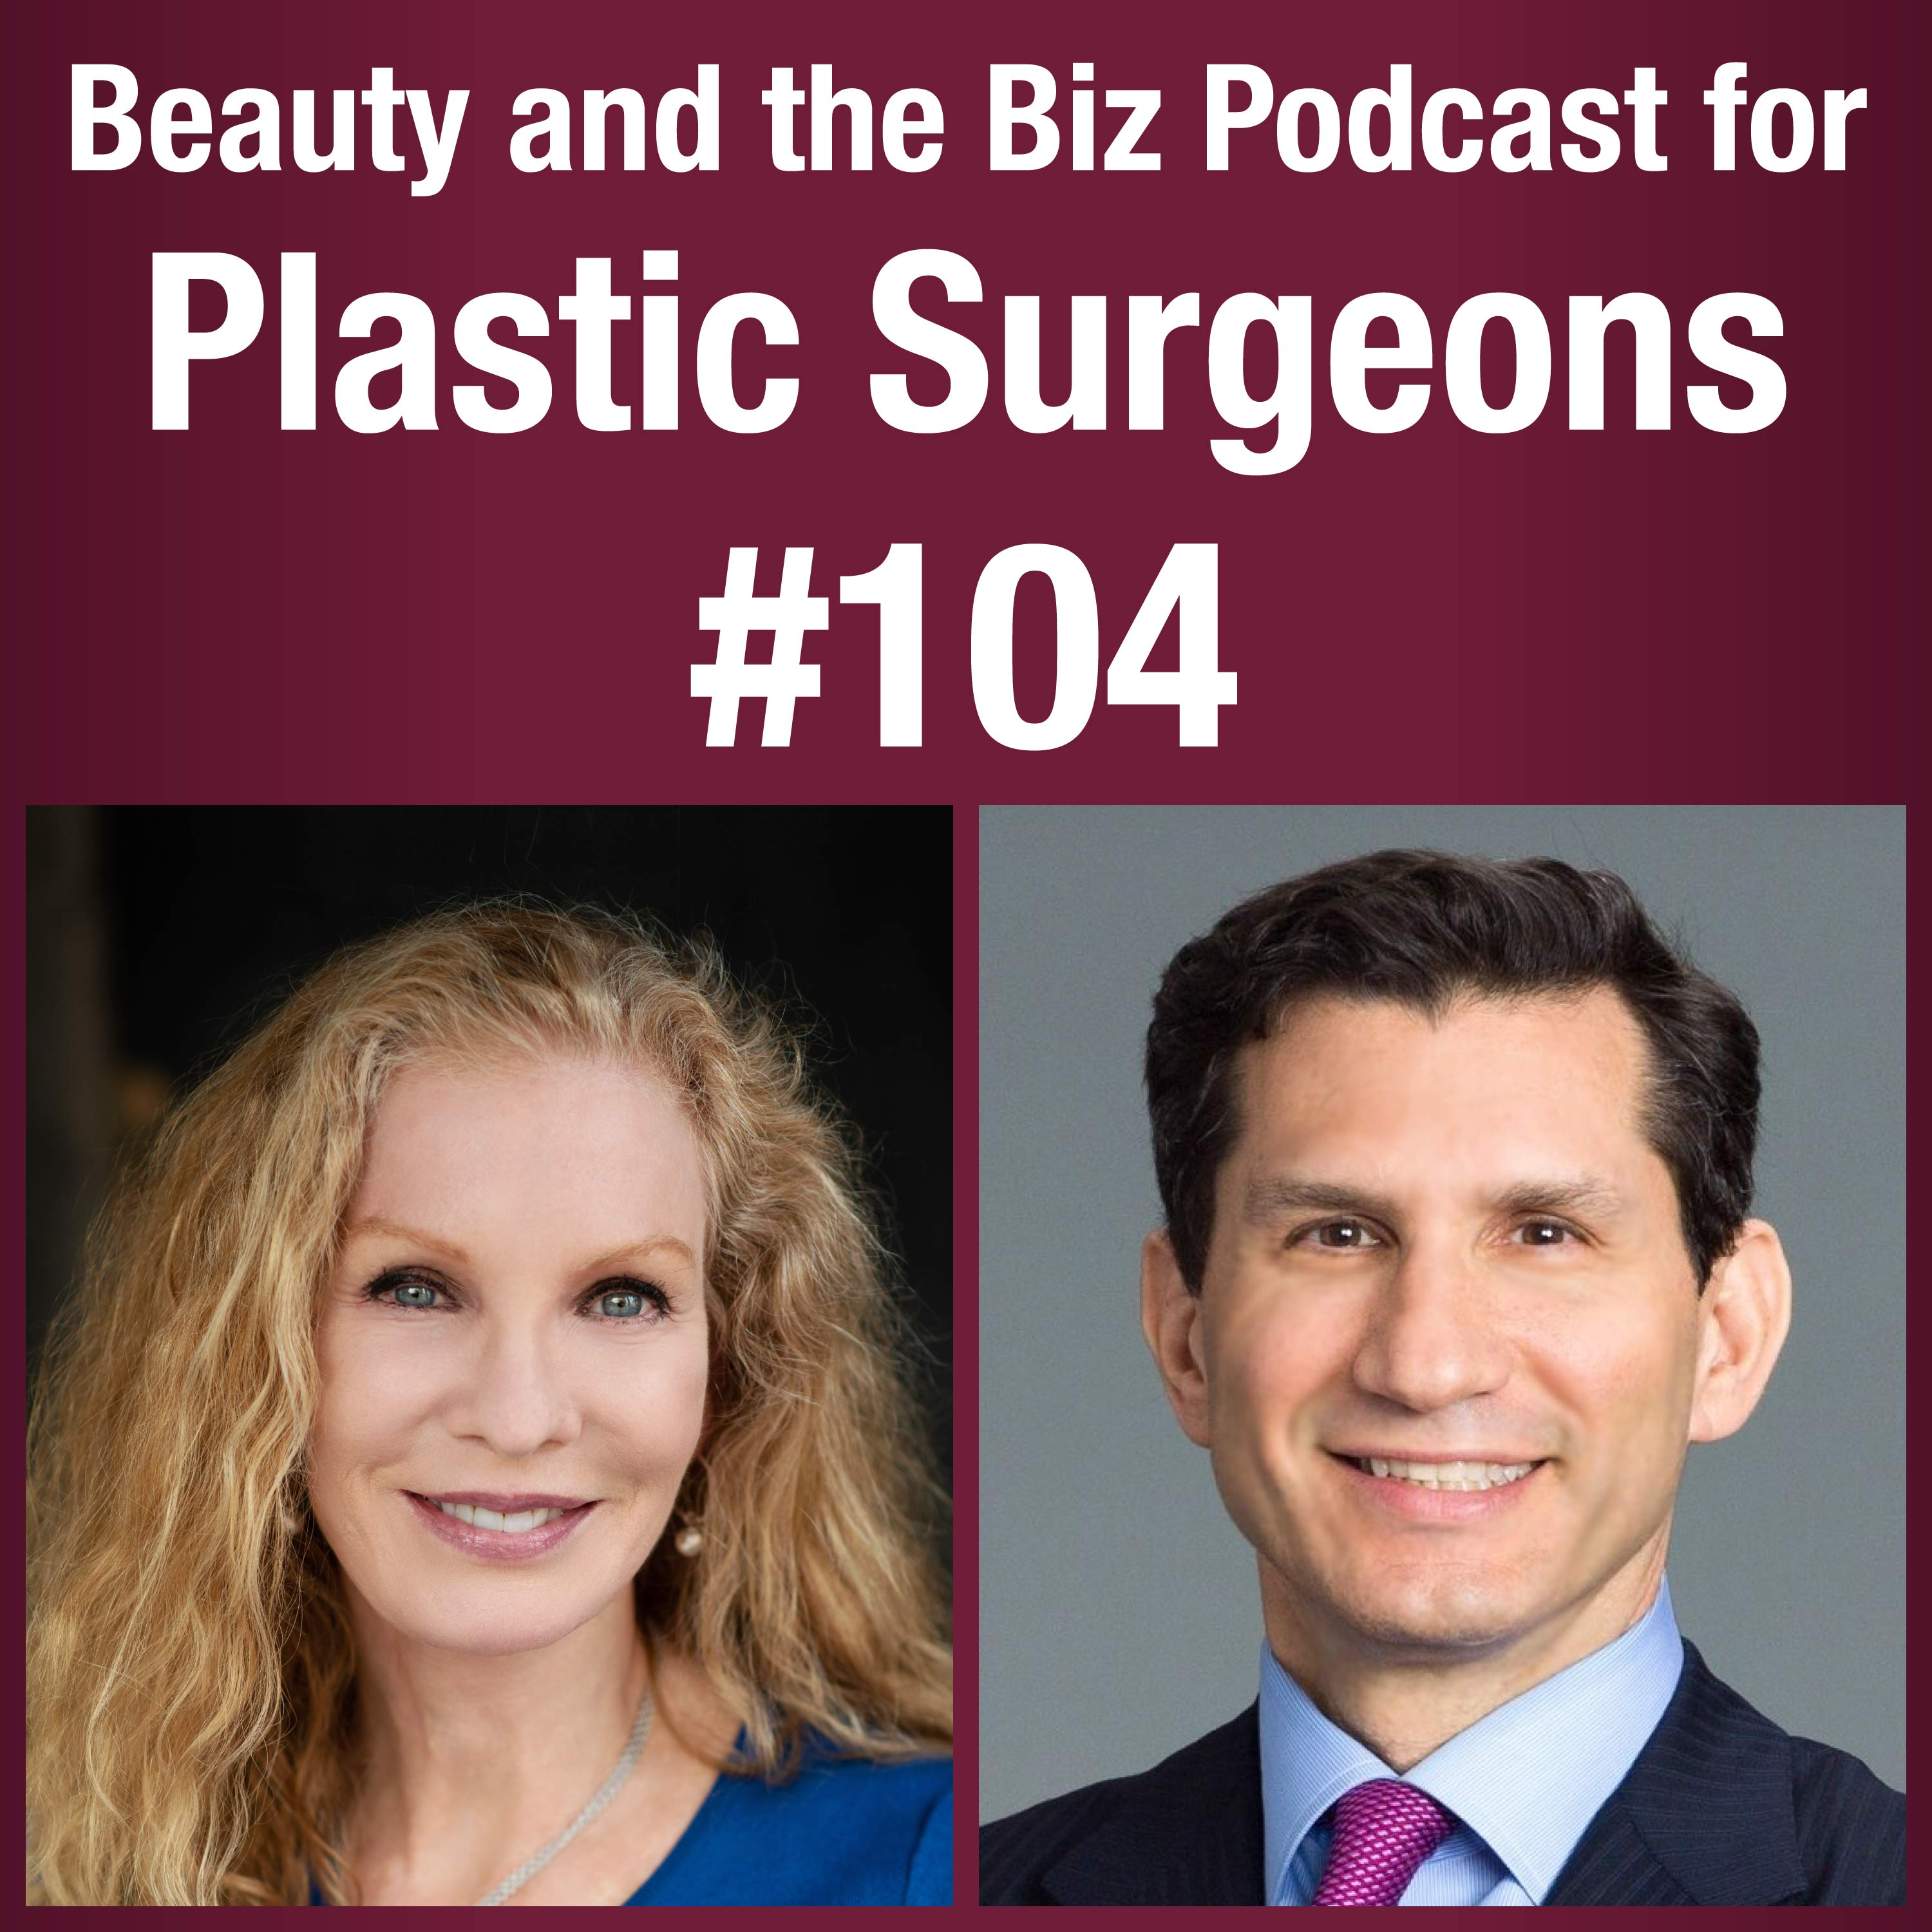 Ep.104: Interview with Philip J. Miller, MD, FACS